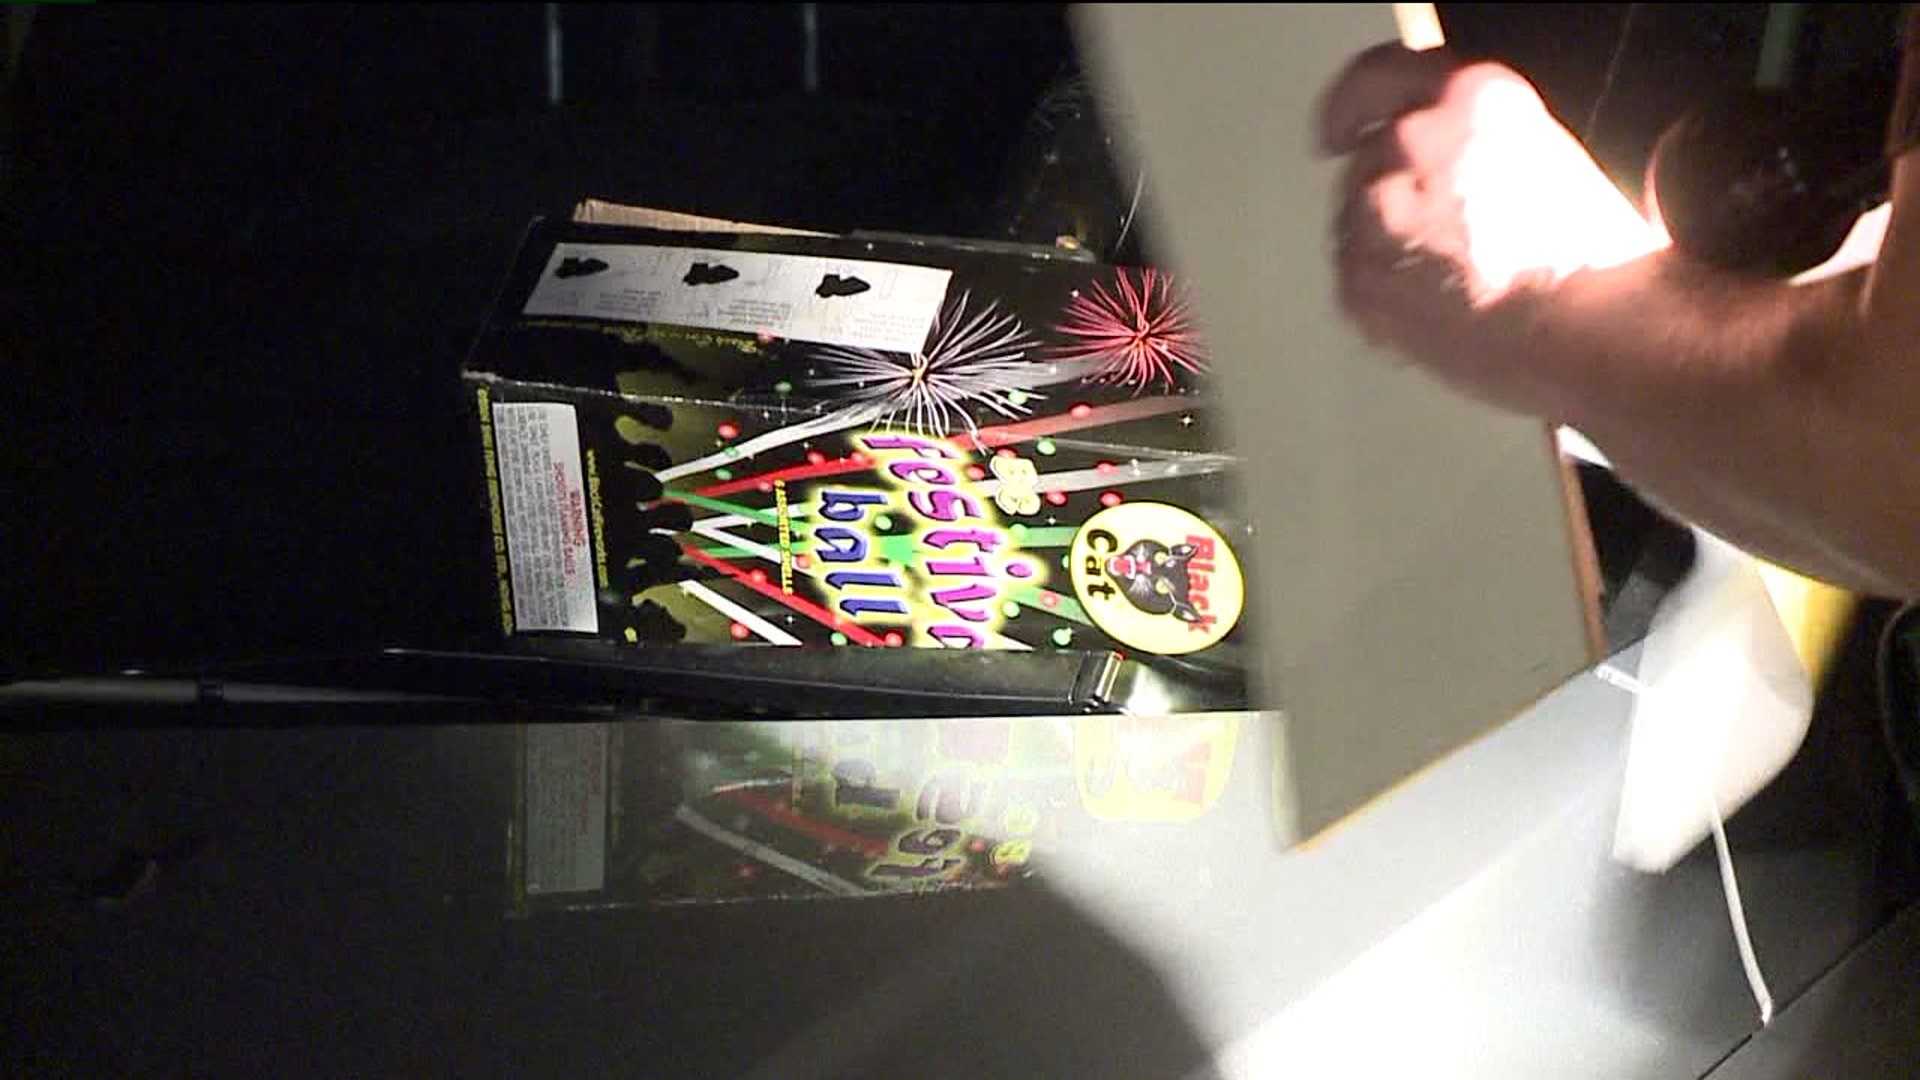 Police enforce fireworks laws